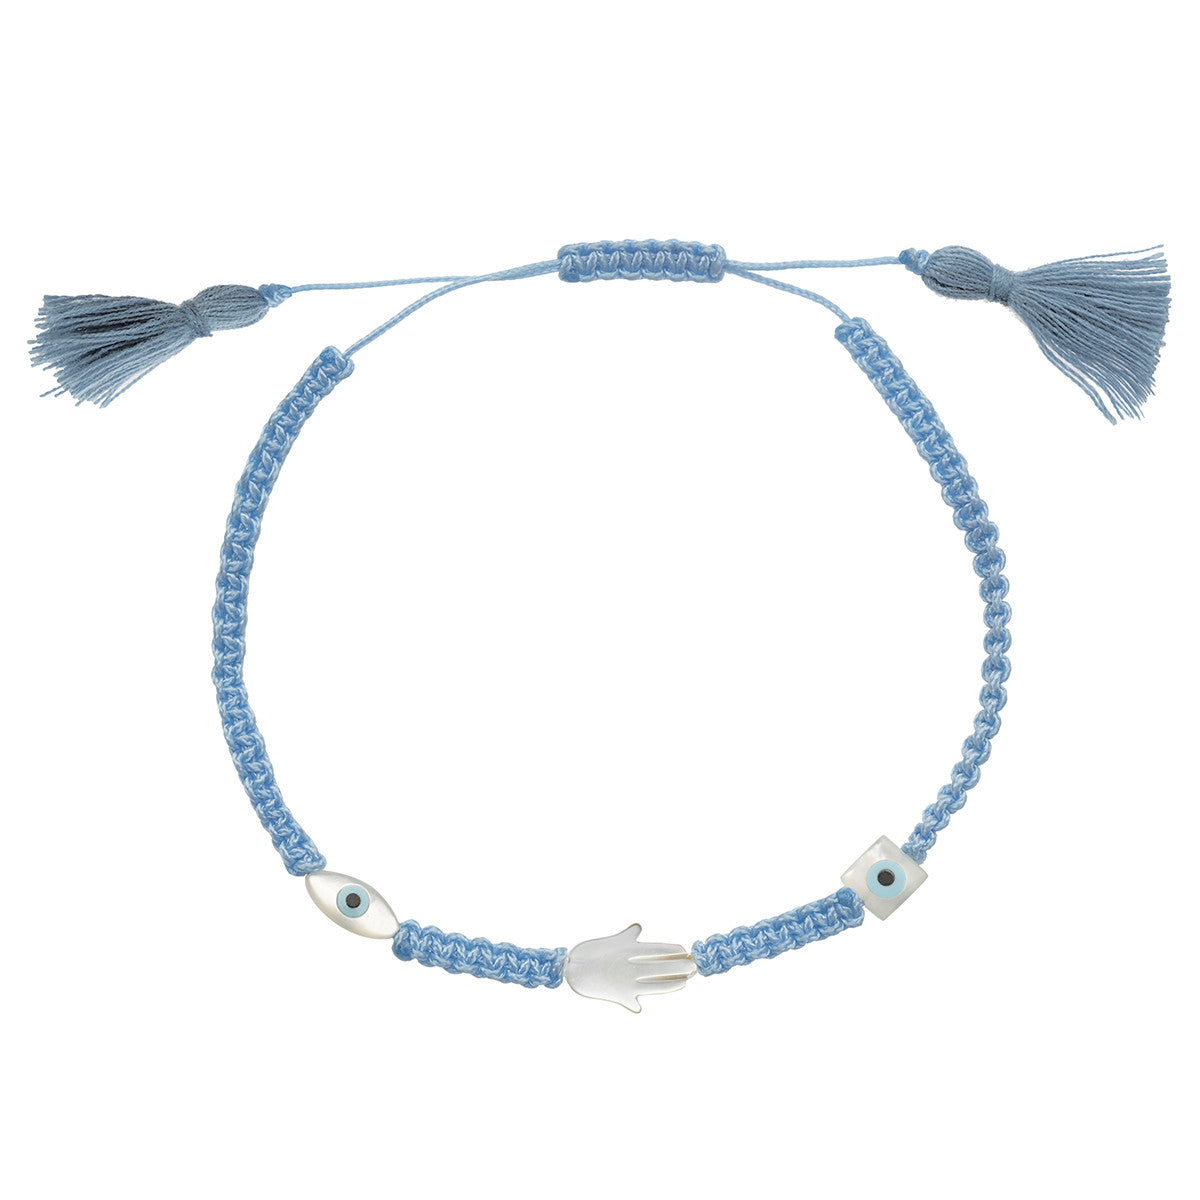 Summer Bracelet 23 Light Blue Sky